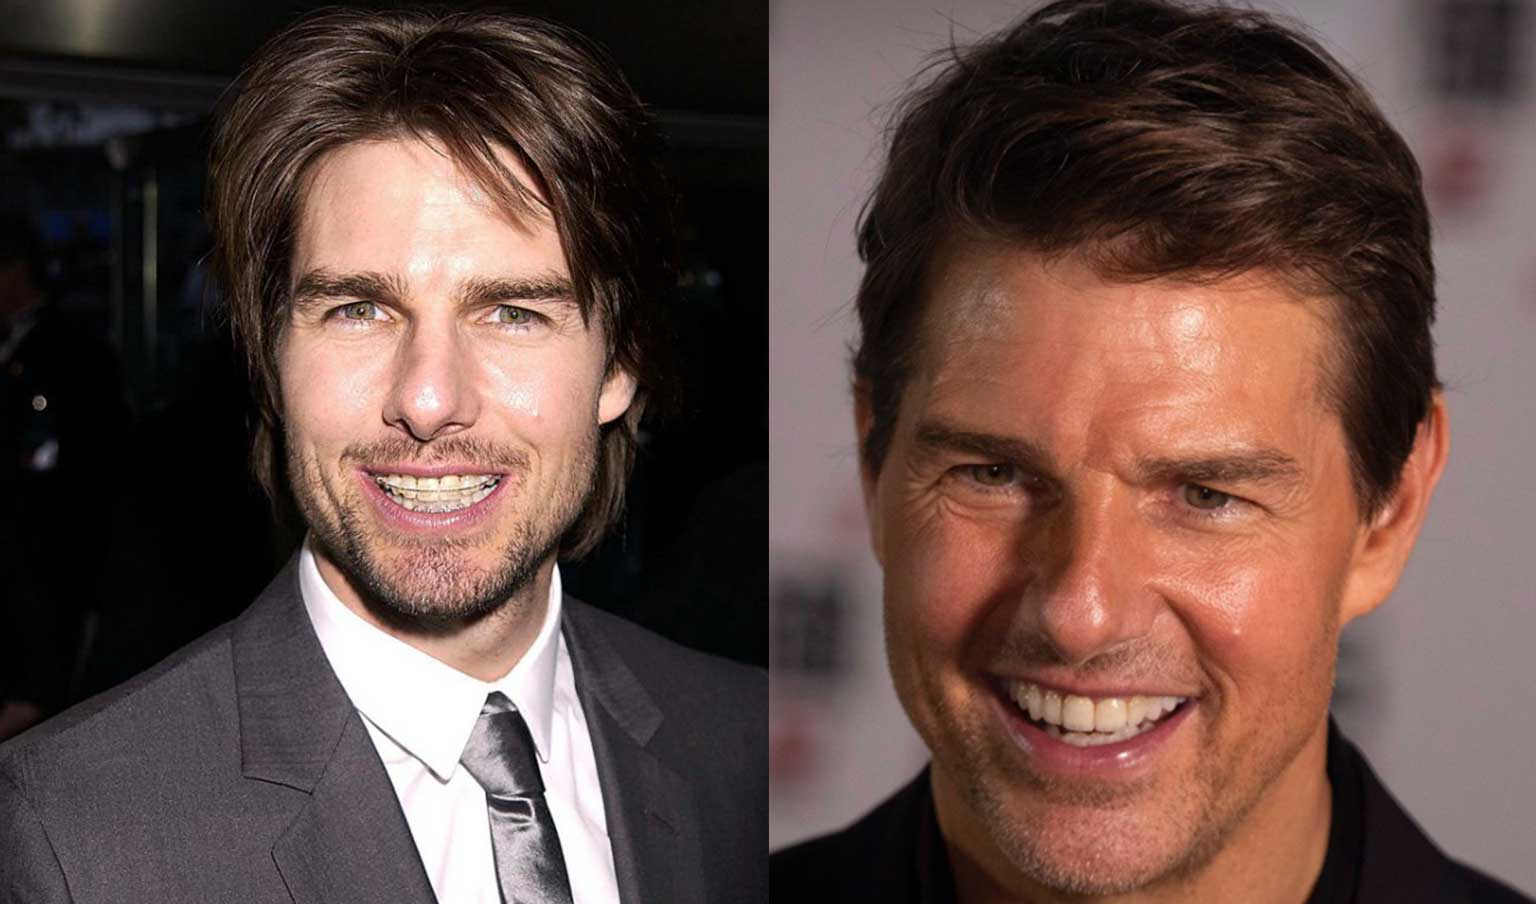 Before and after Celebrity Tom Cruise in ceramic braces